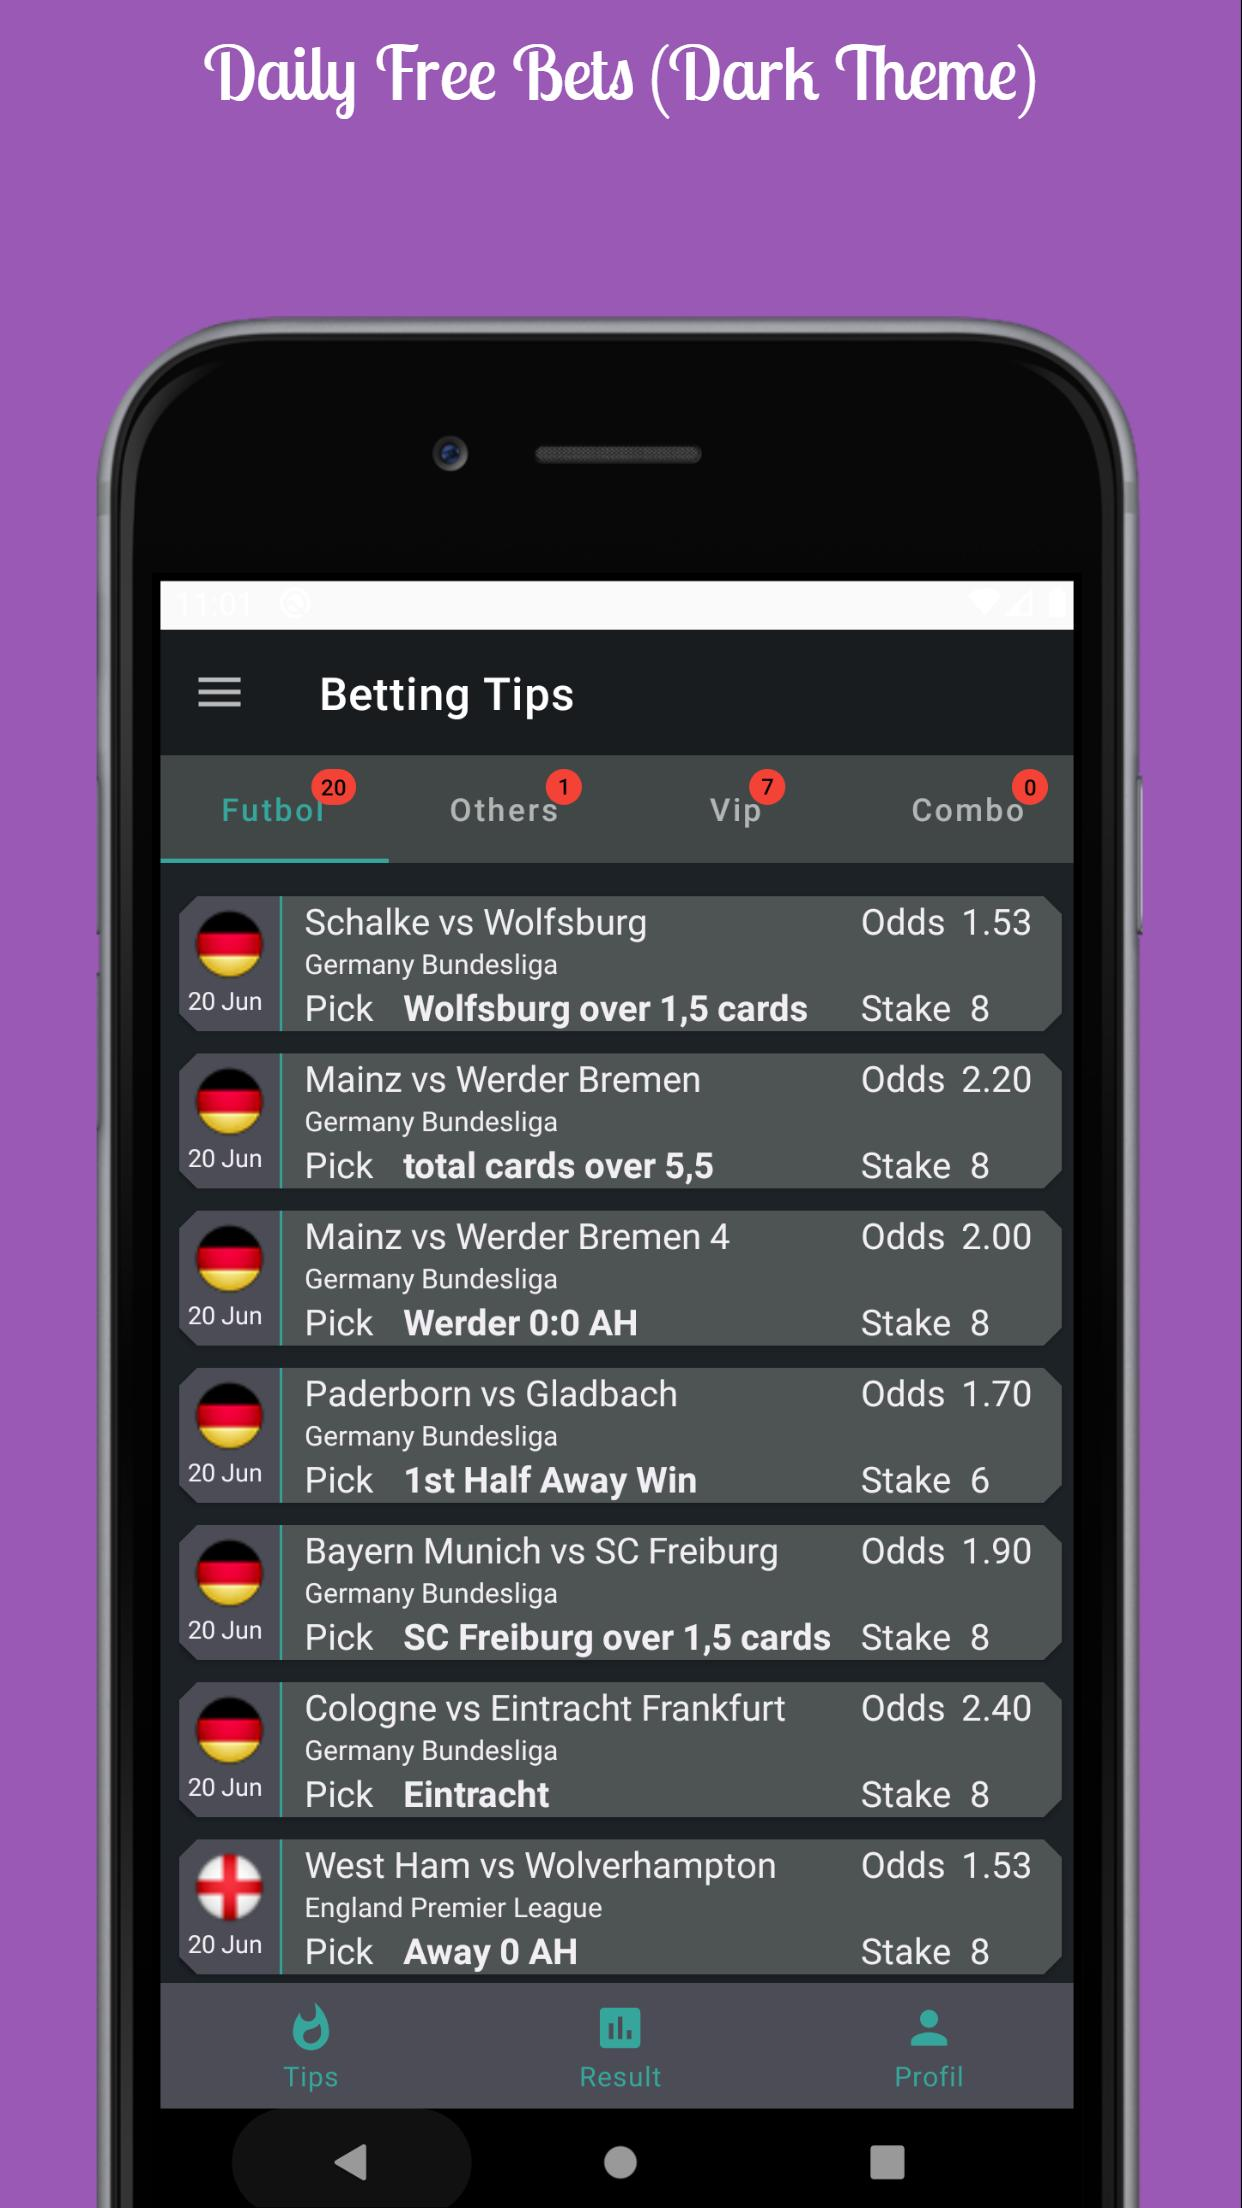 Everyday 1 betting tip apk download bitcoins seized by fbi wanted